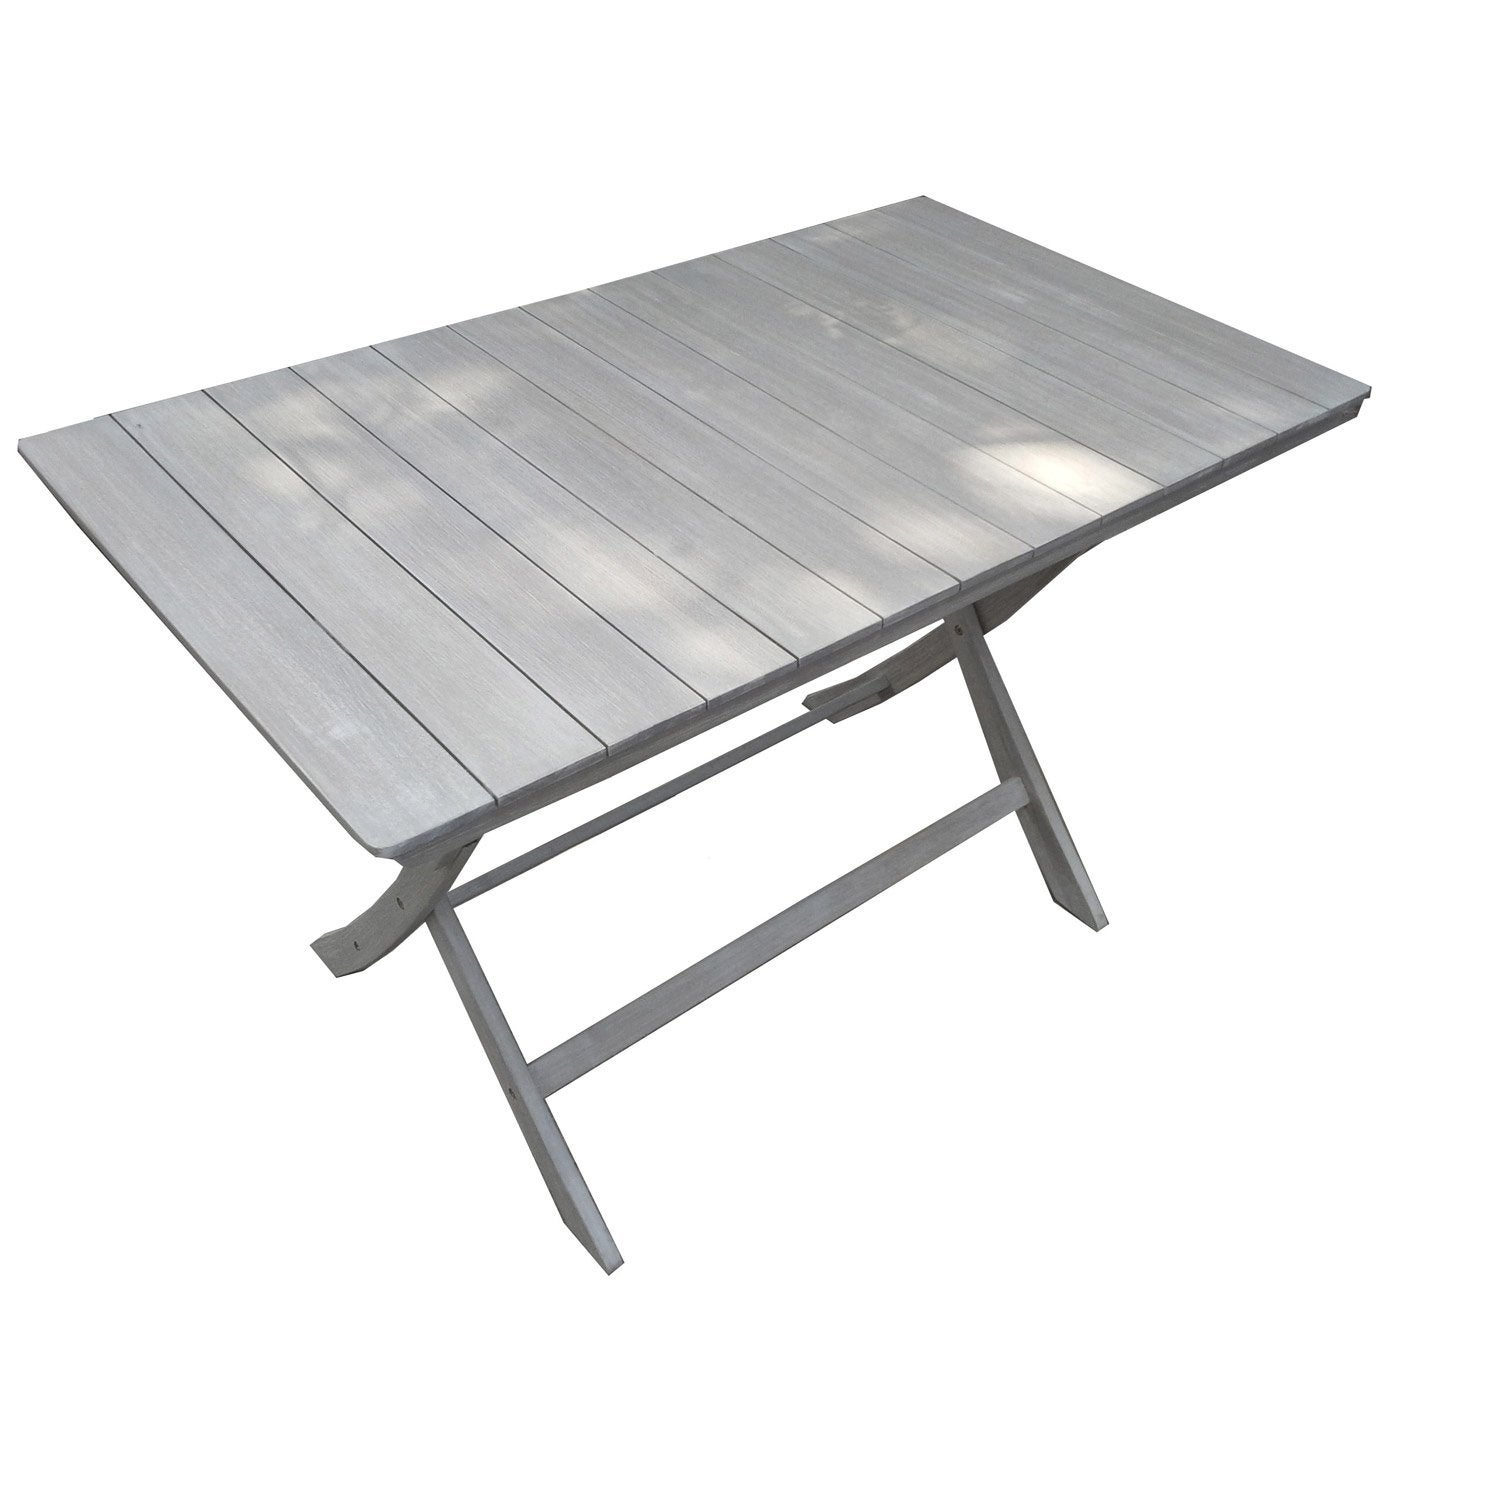 Table de jardin naterial portofino rectangulaire gris 4 for Table exterieur castorama